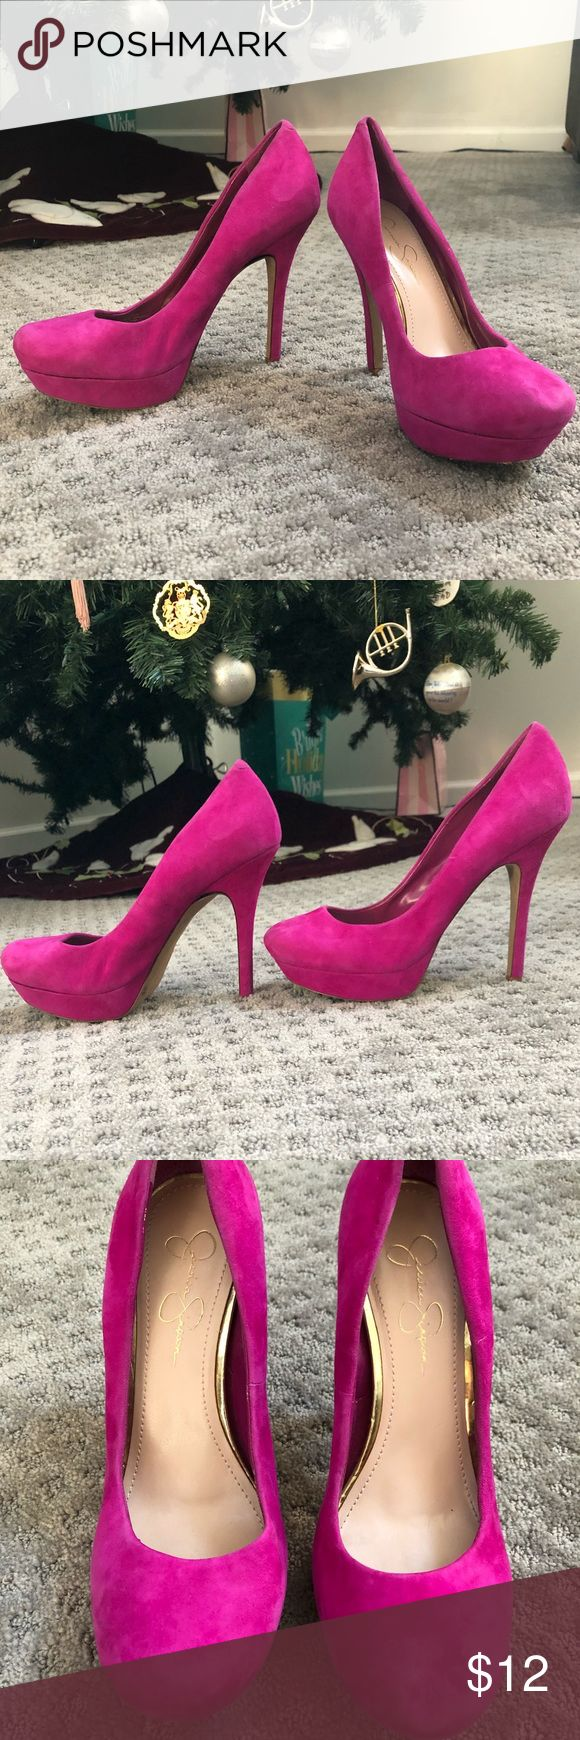 Pink Jessica Simpson Stilettos EUC pink pumps from Jessica Simpson. Size 9.5 and fits true to size! Extremely comfortable thanks to the one inch platform, but add a lot of height for someone who is already tall. Very minor signs of wear inside and on the left tip of the toe. Jessica Simpson Shoes Heels